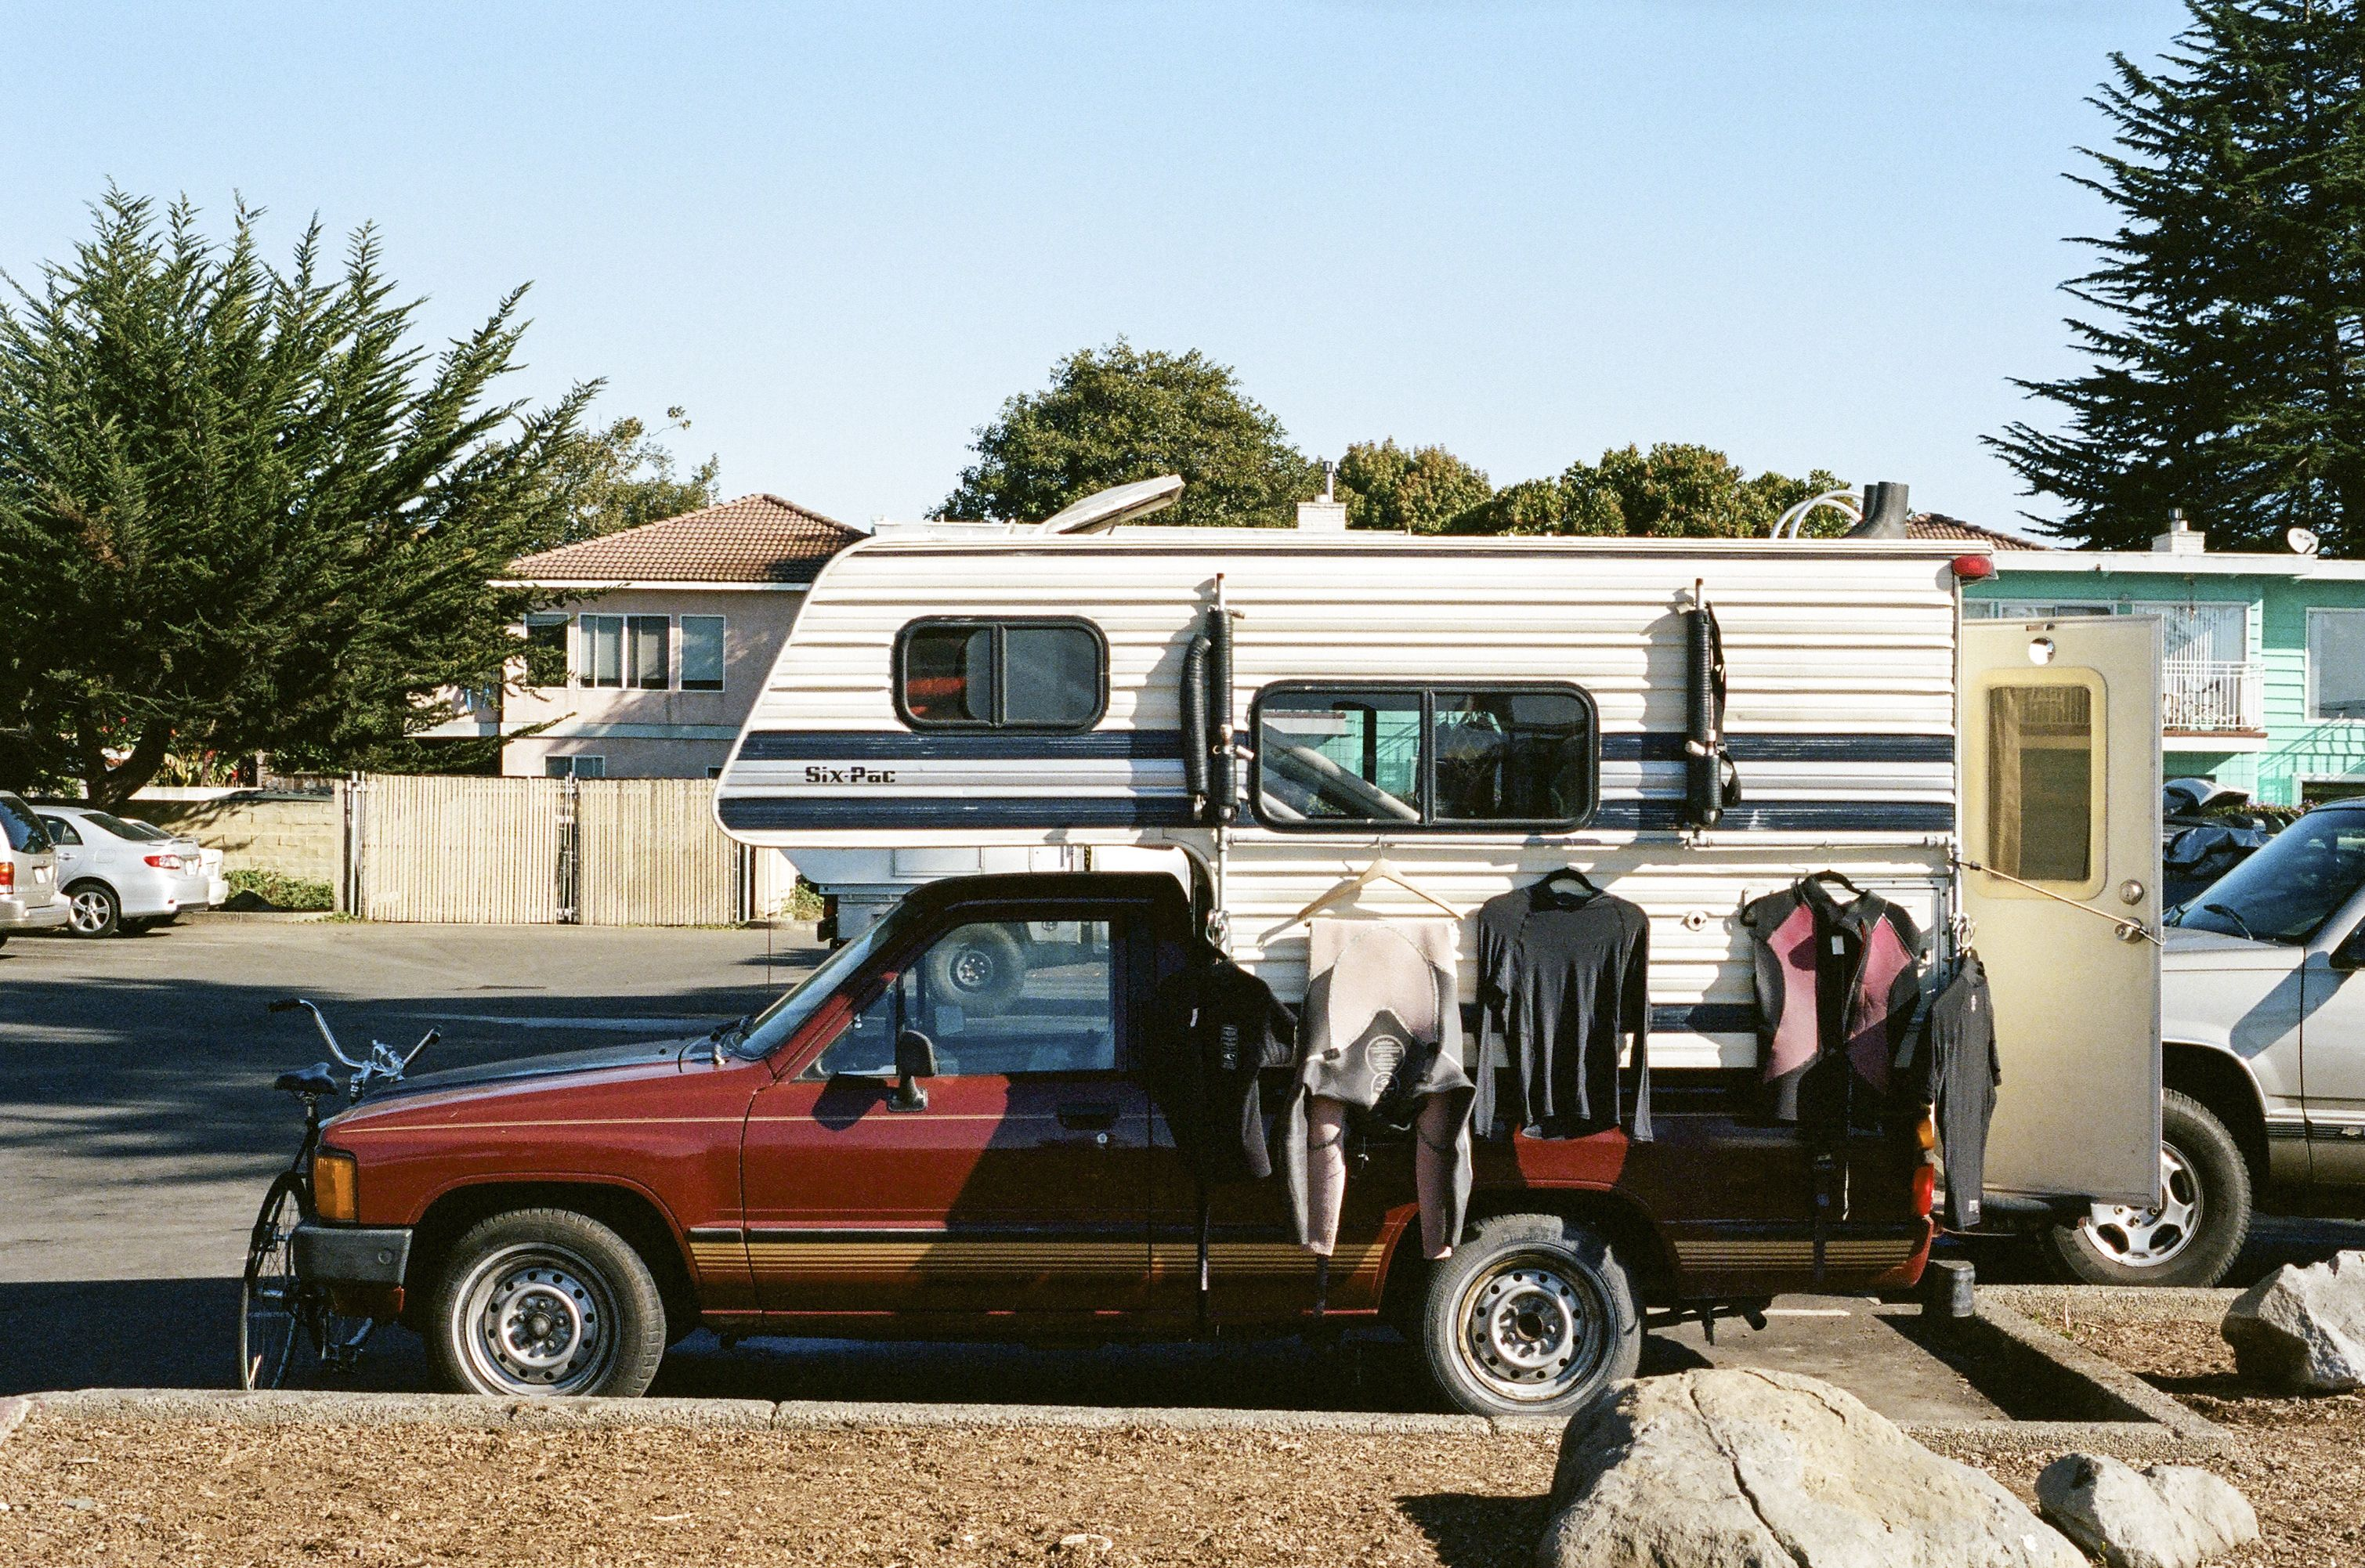 Toyota Truck And A Sixpack Camper Ships Of The Open Road